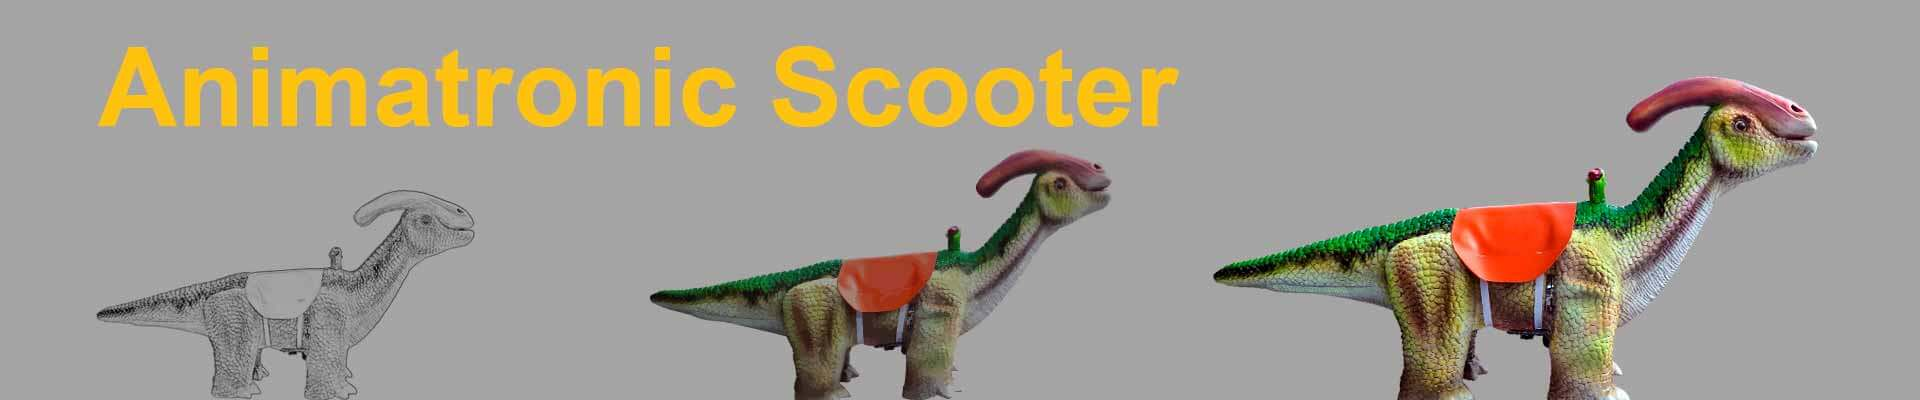 Animatronic Scooter